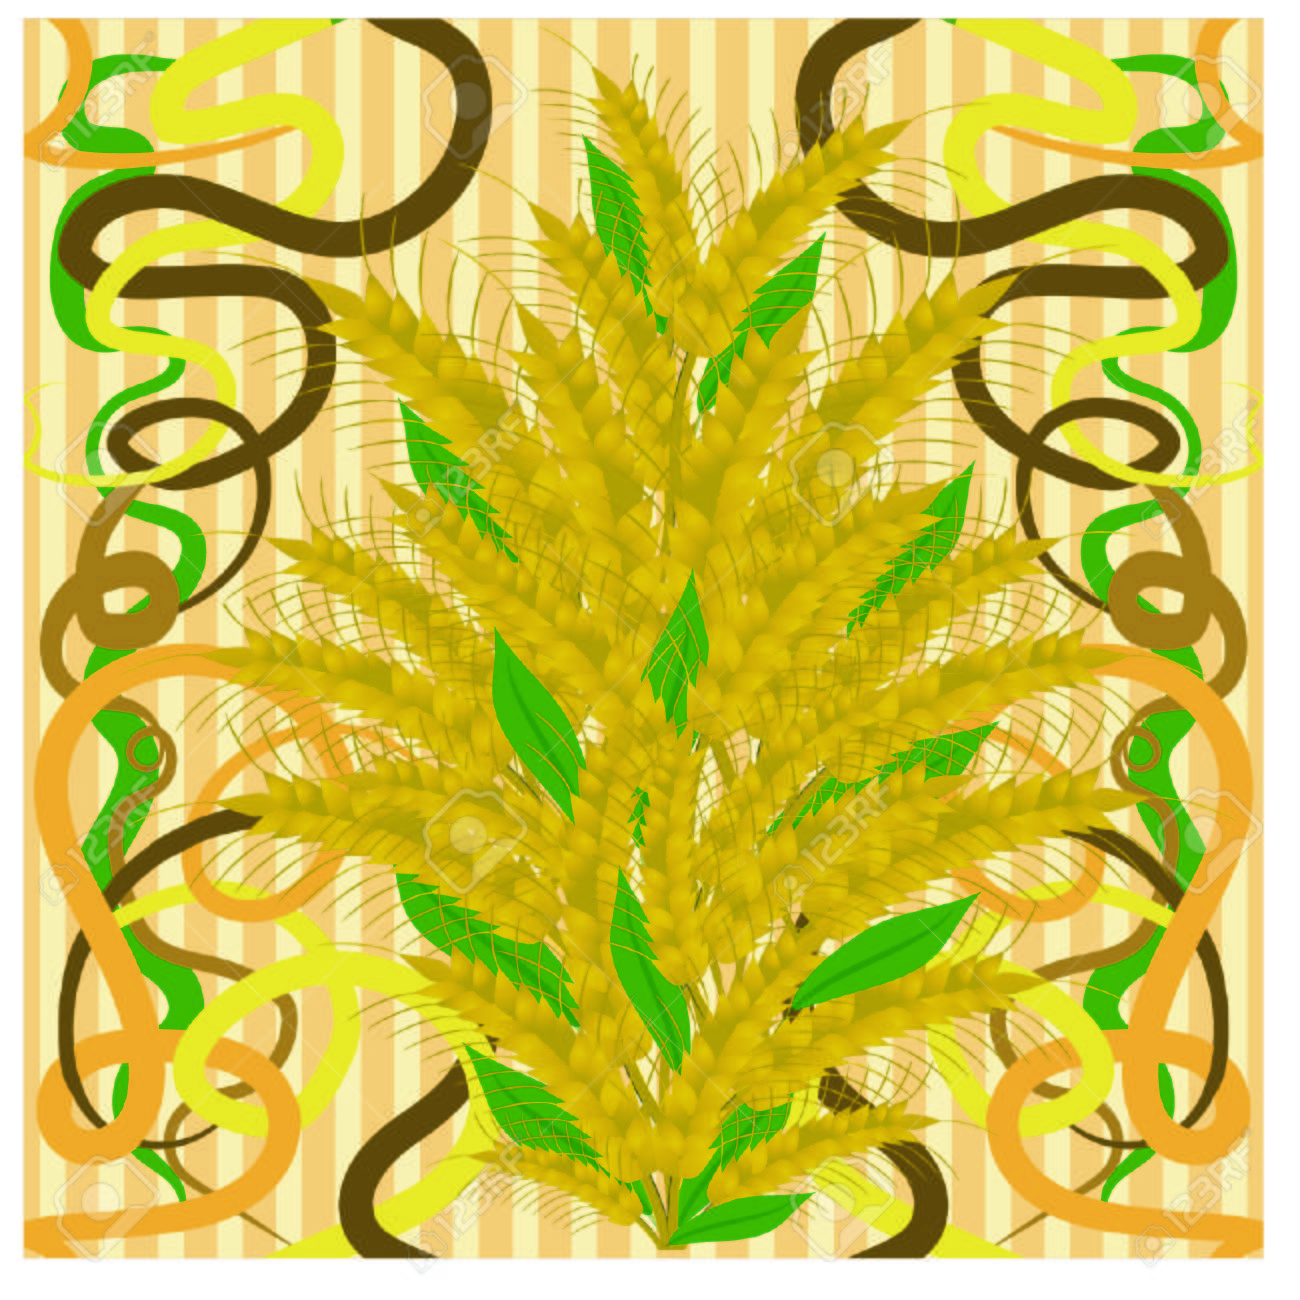 Seamless Wallpaper With Wheat In Art Nouveau Style, Vector ...